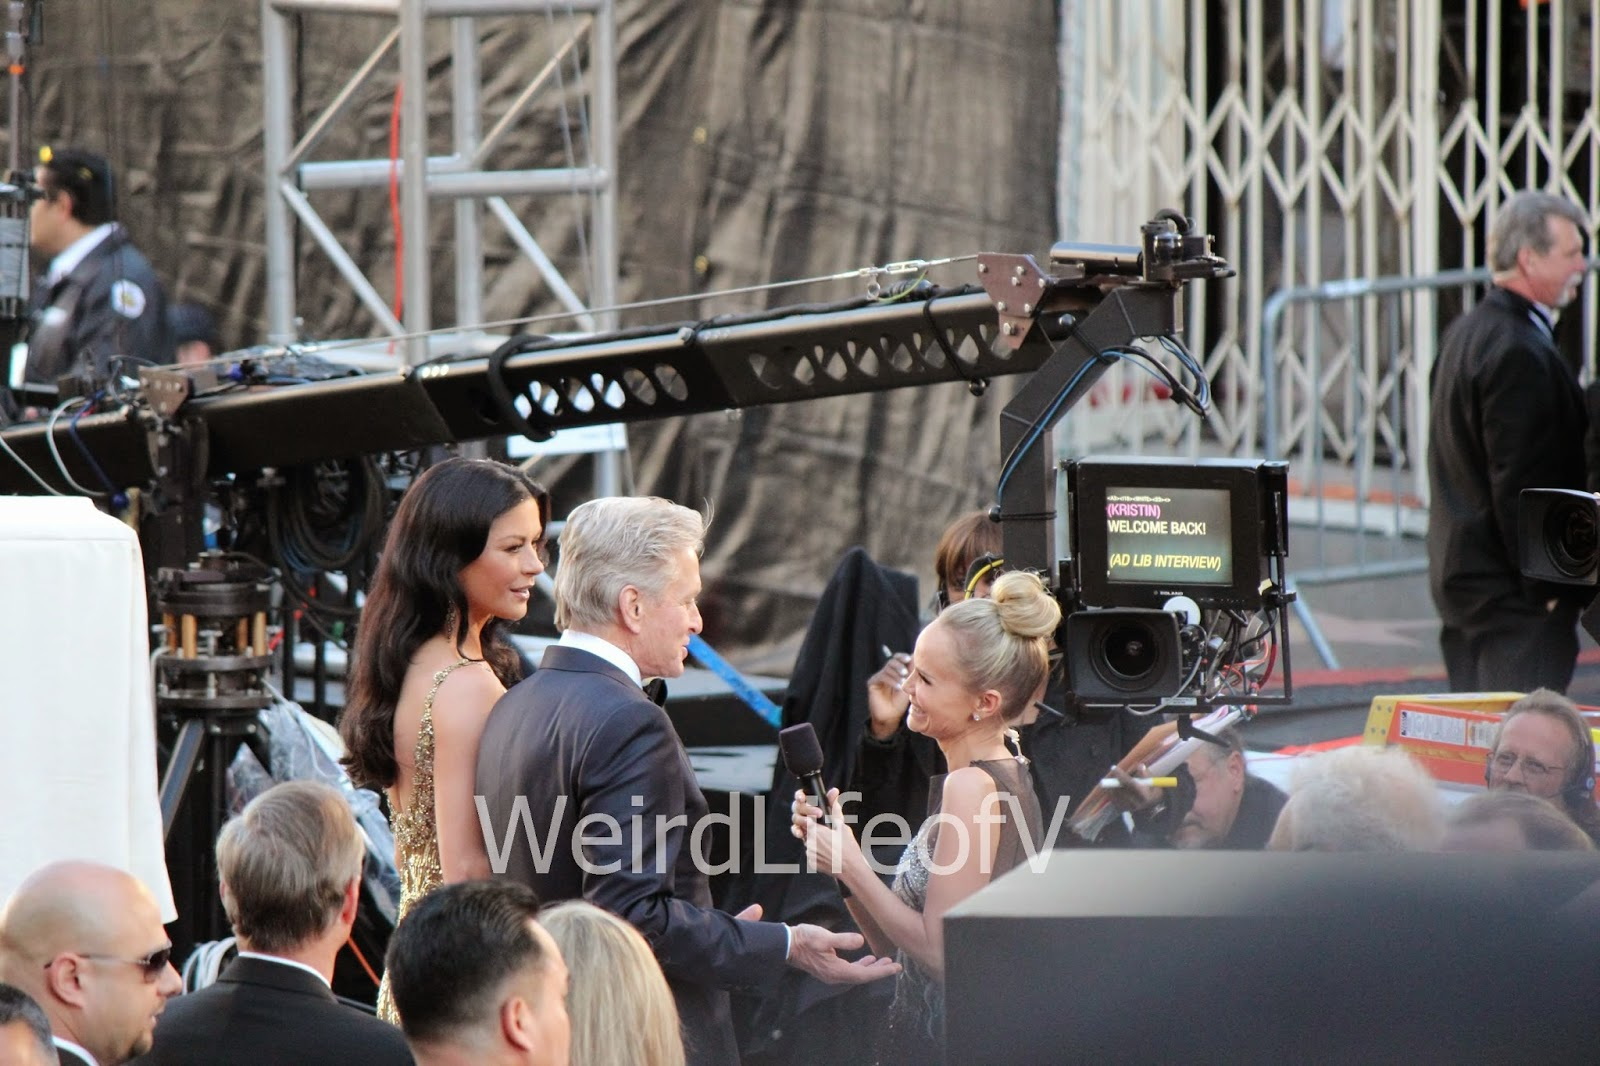 Catherine Zeta-Jones and Michael Douglas being interviewed by Kristin Chenoweth